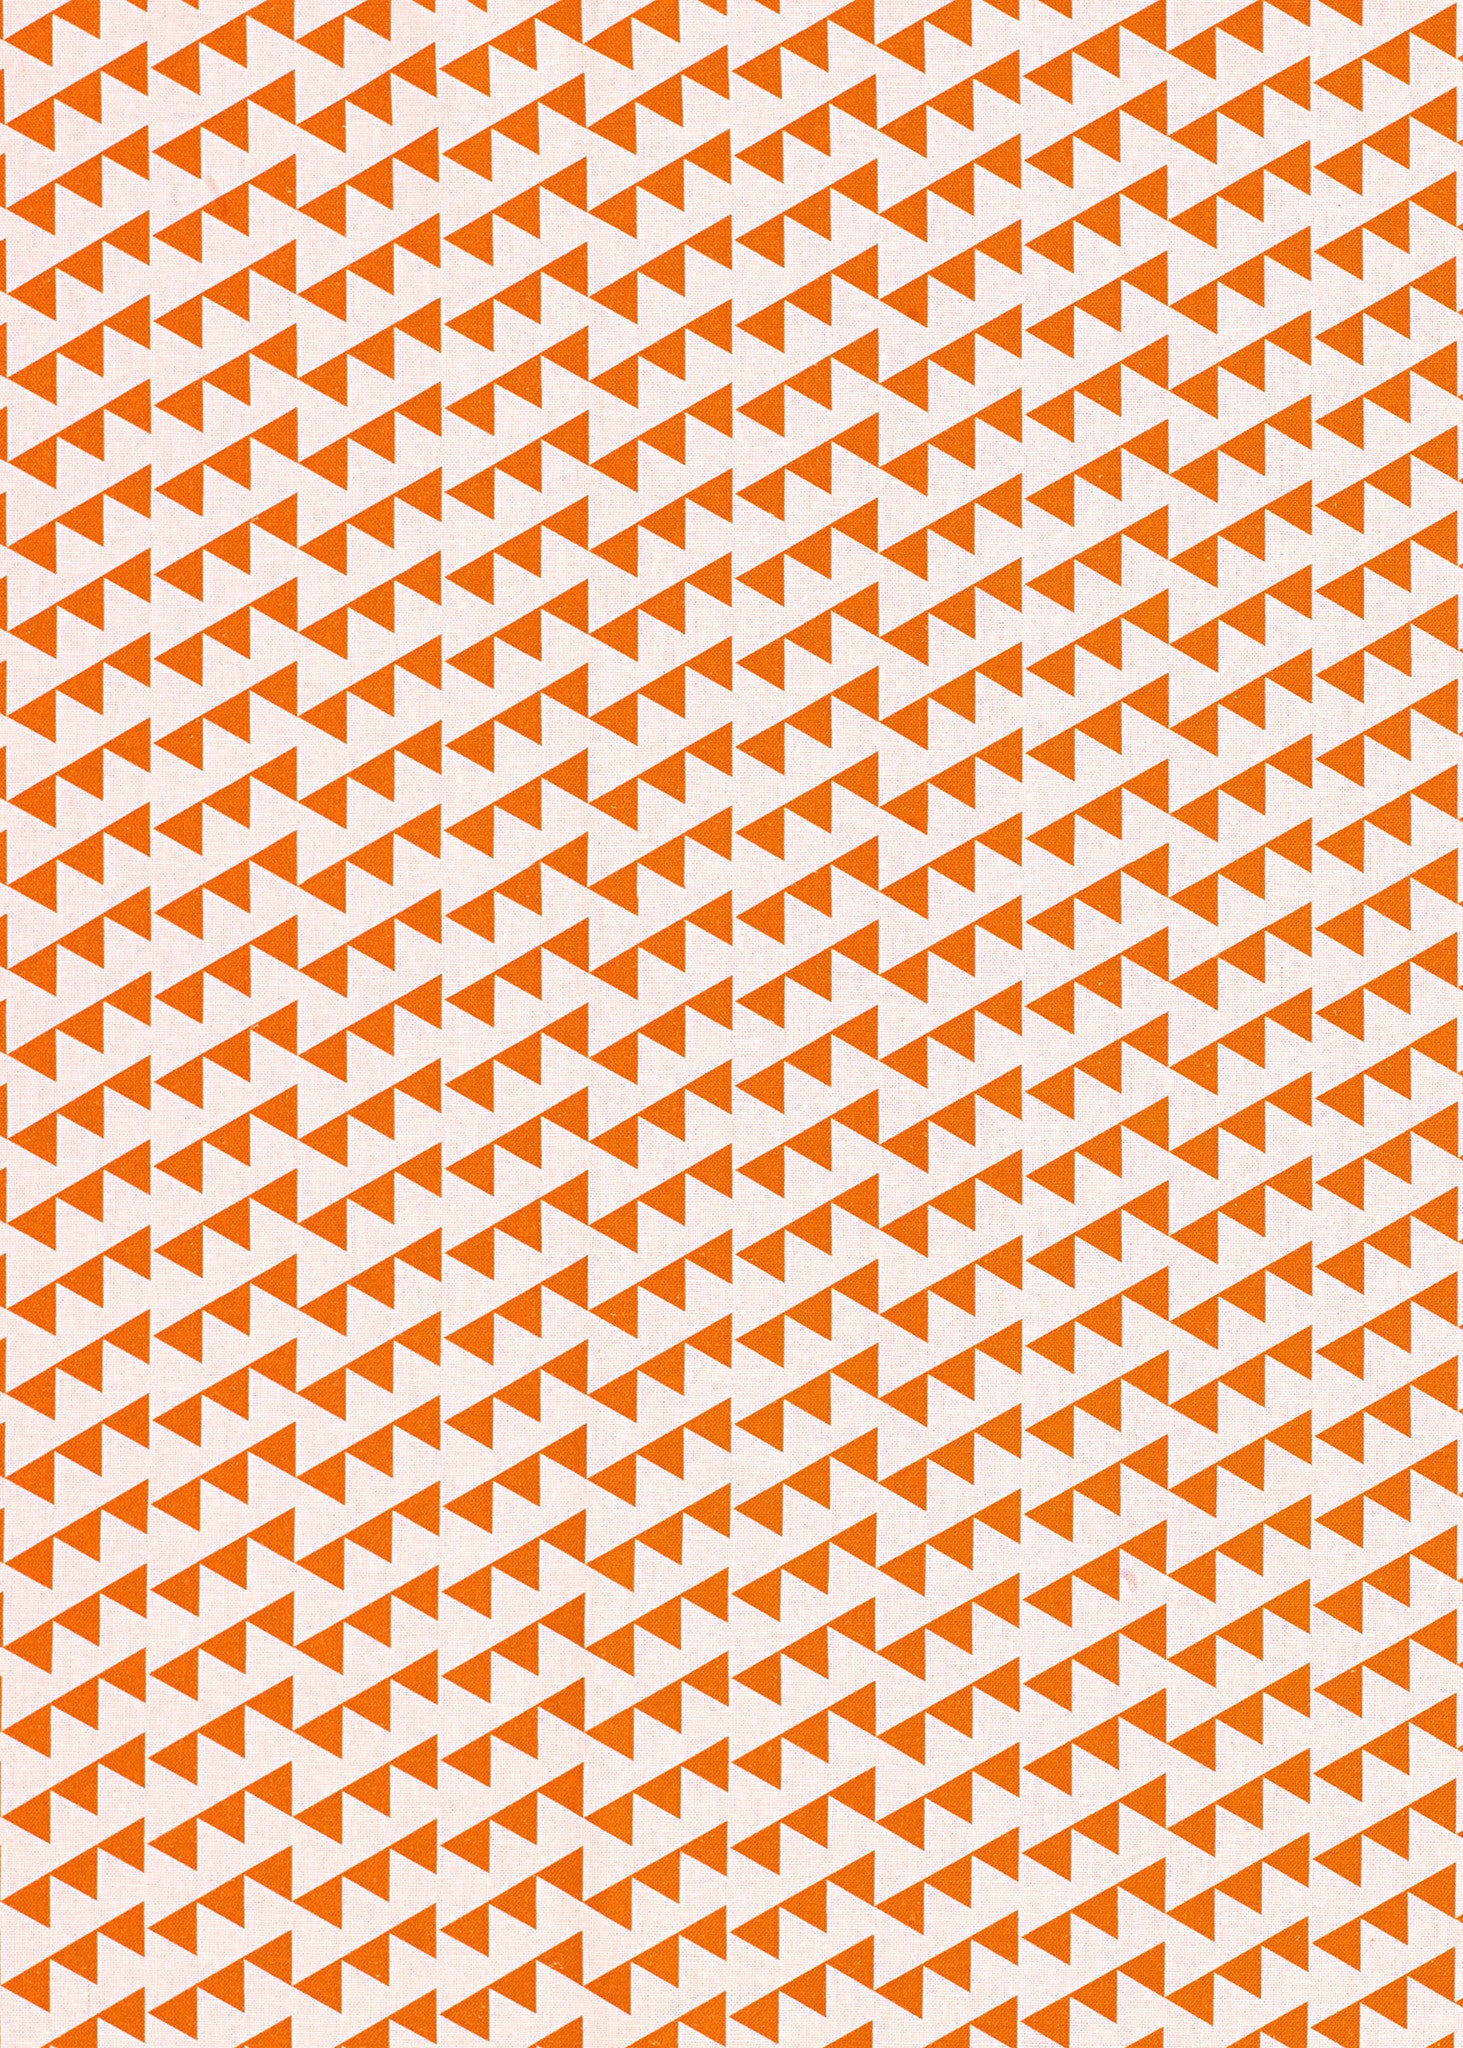 Bunting Geometric Pattern Cotton Linen Fabric in Bright Pumpkin Orange